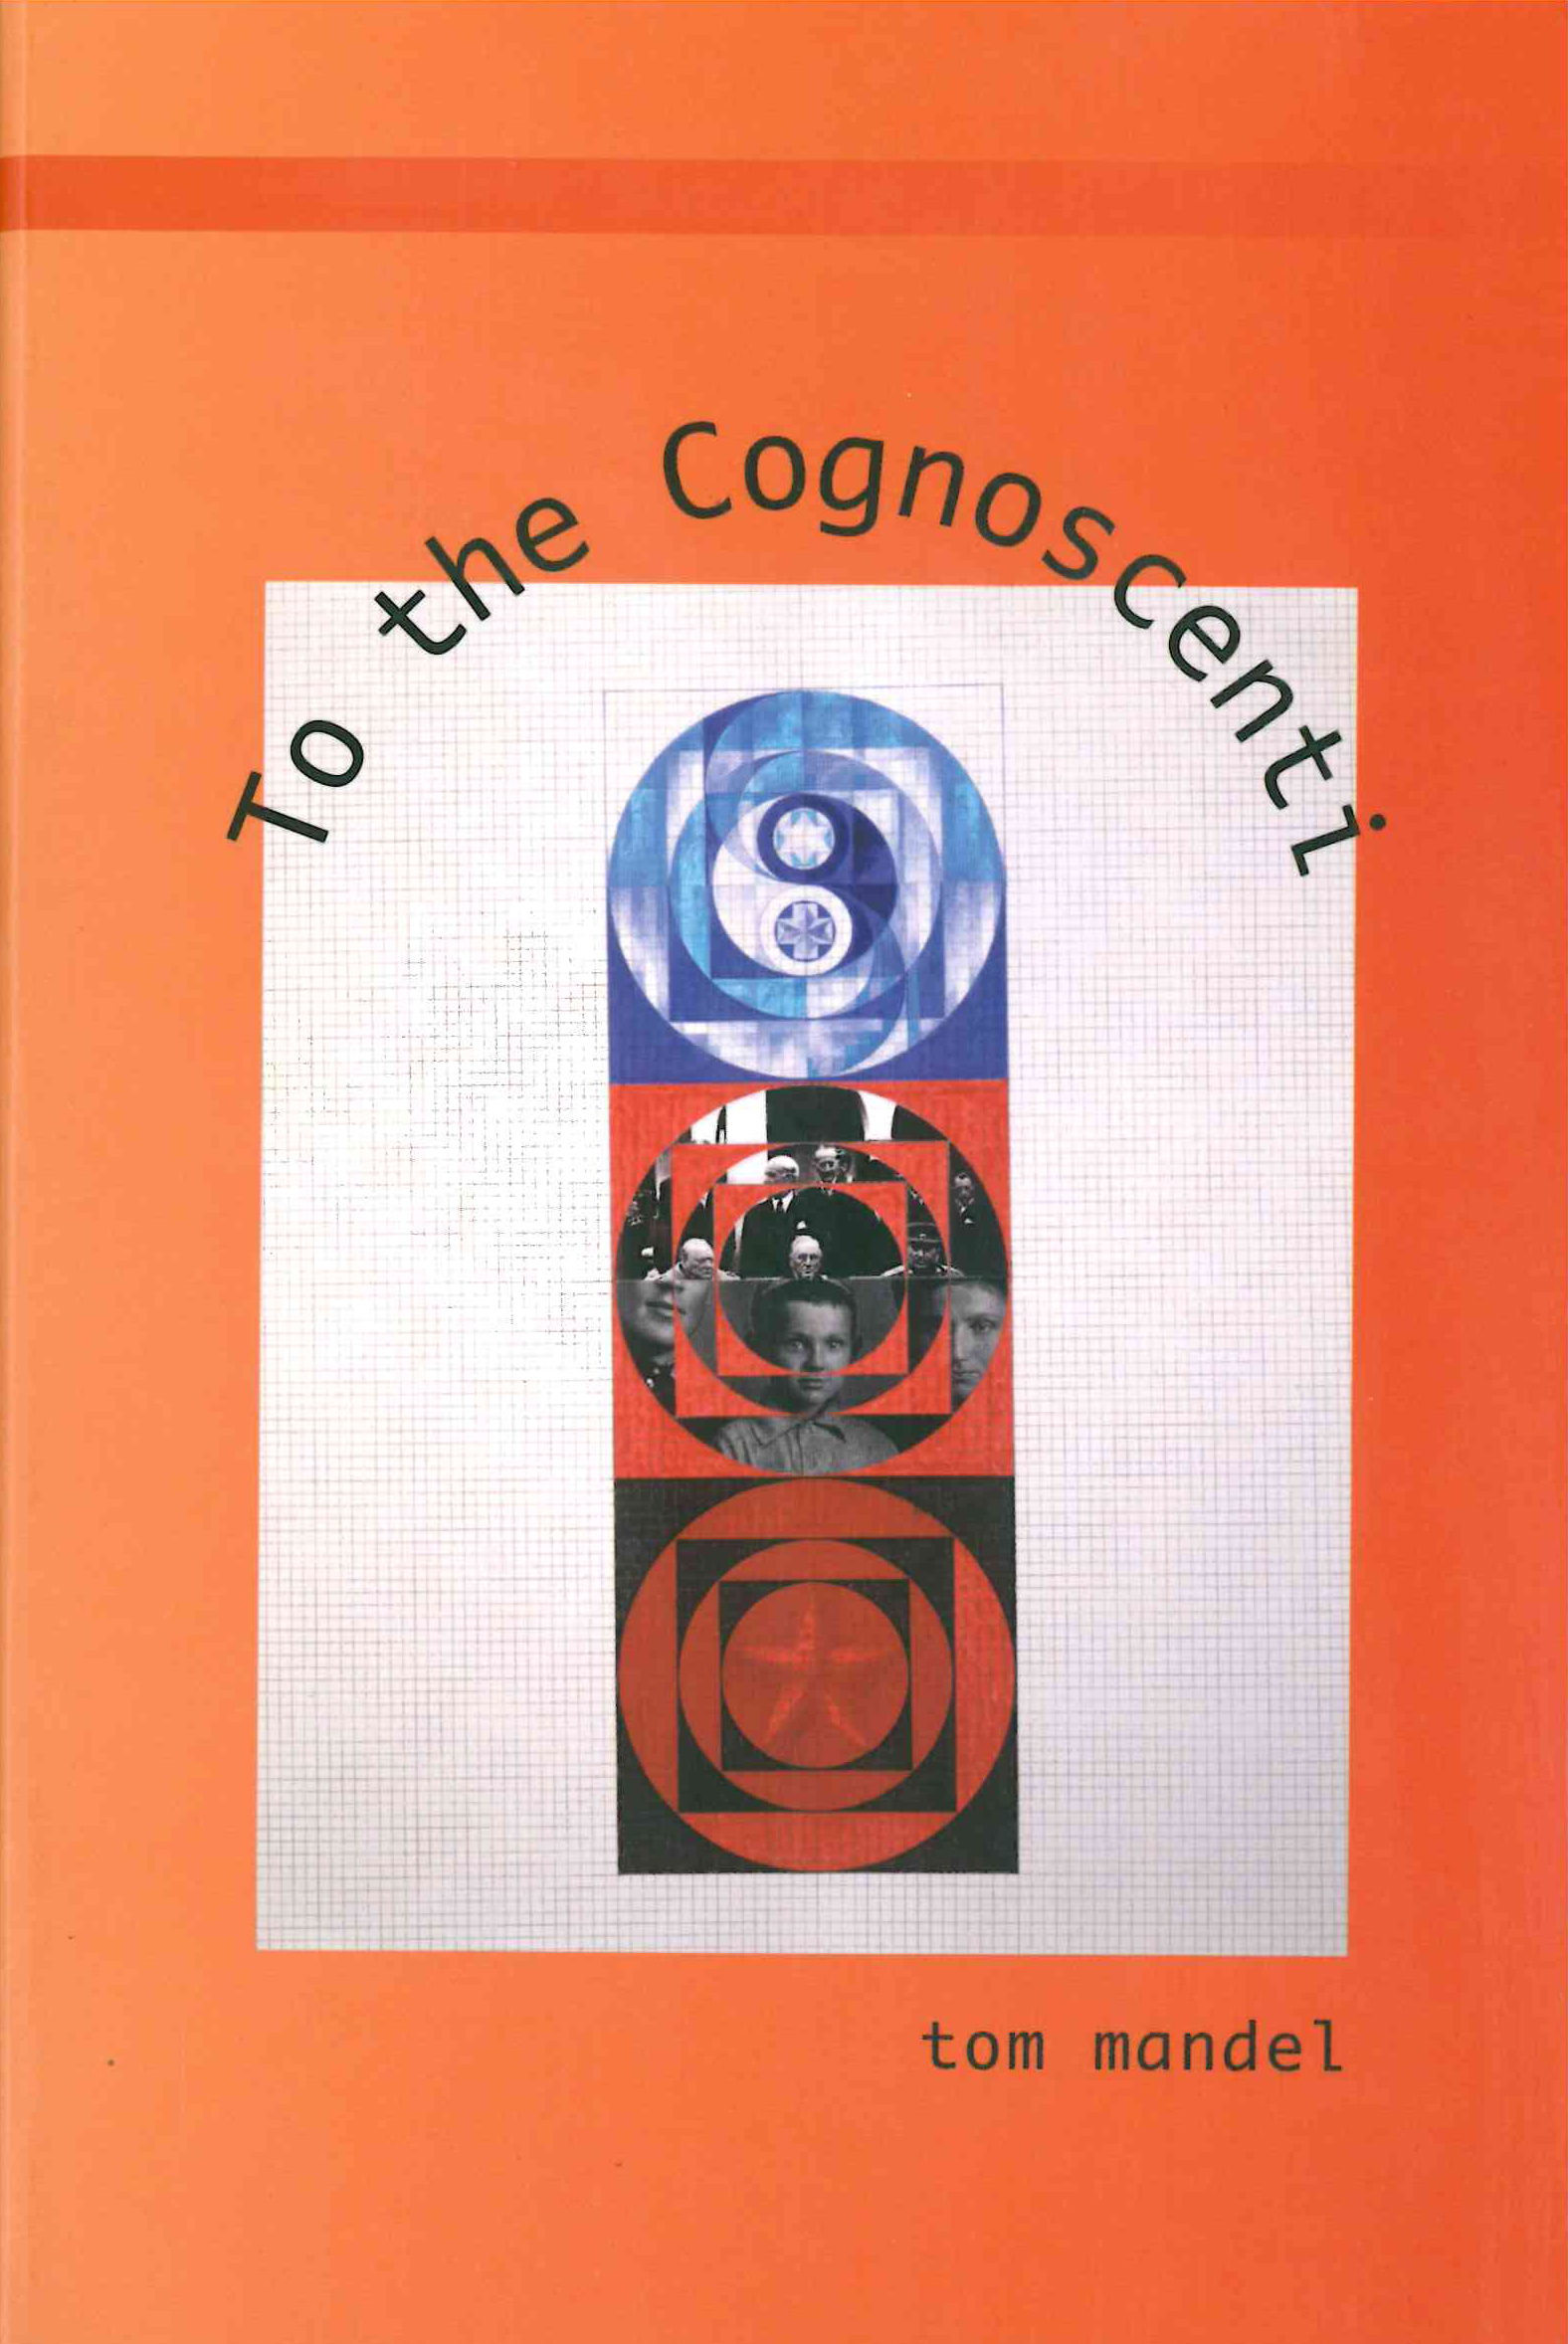 TO THE COGNOSCENTI